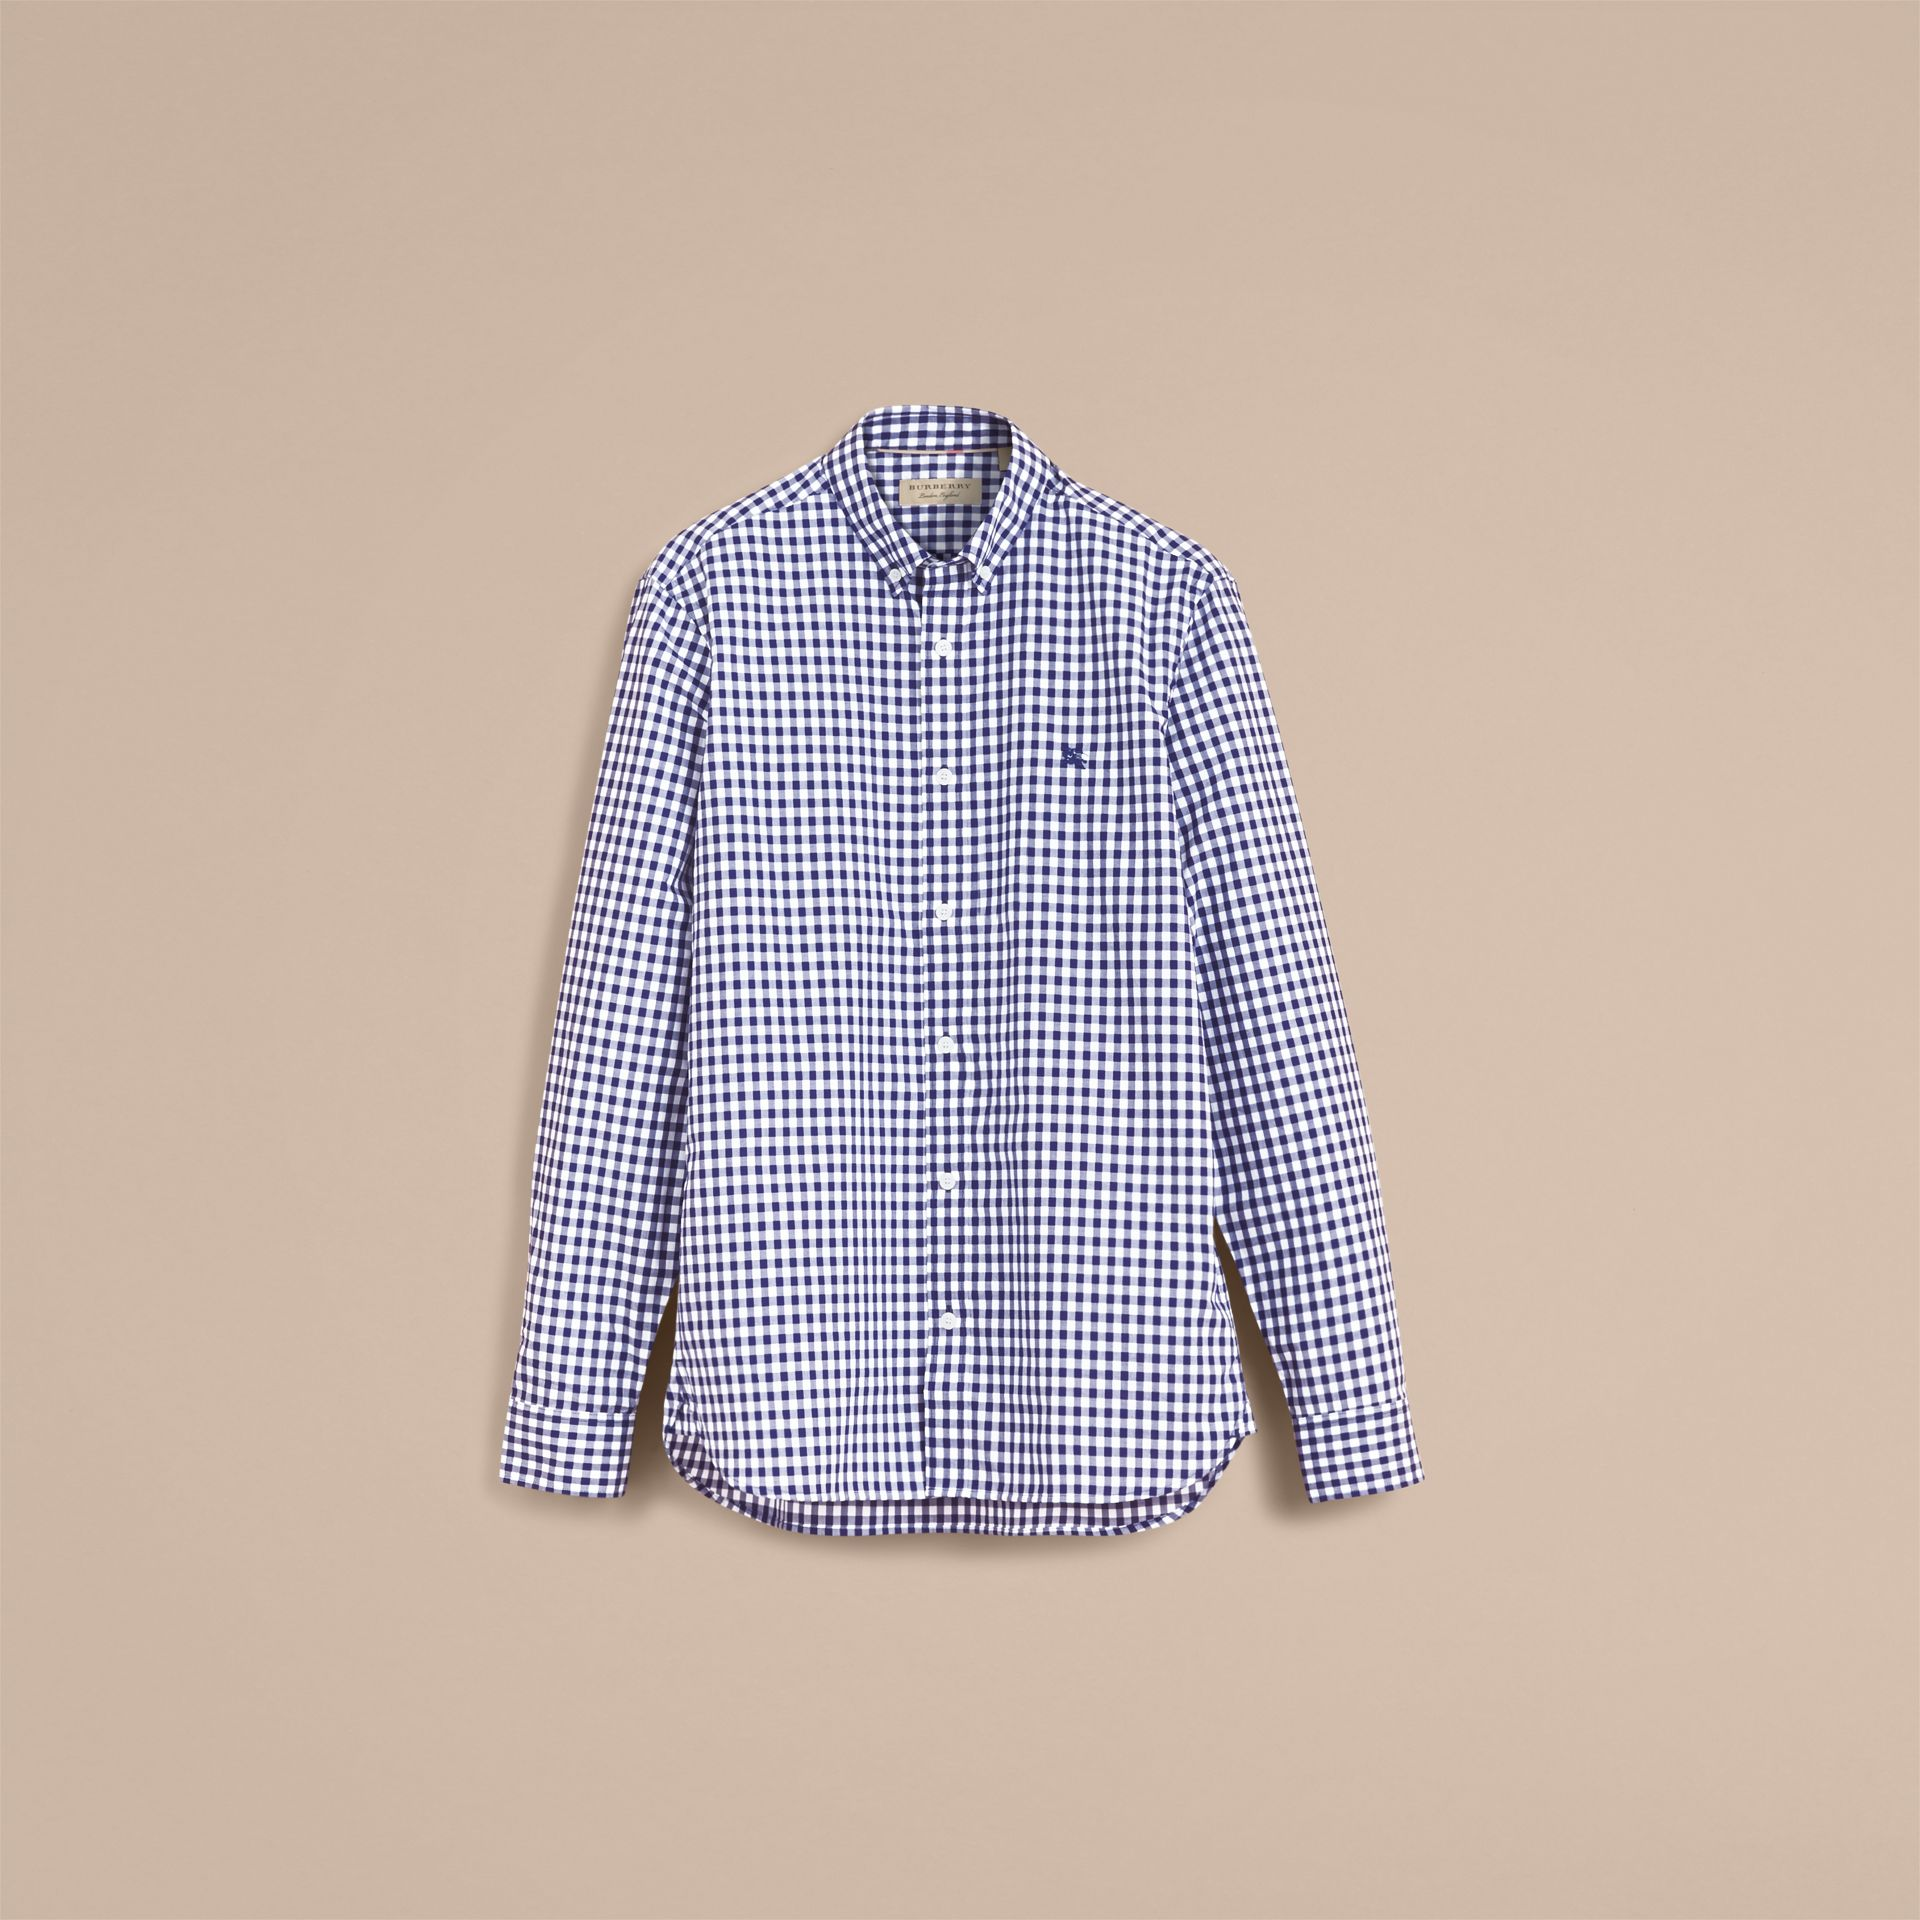 Button-down Collar Gingham Cotton Shirt in Navy - Men | Burberry - gallery image 4